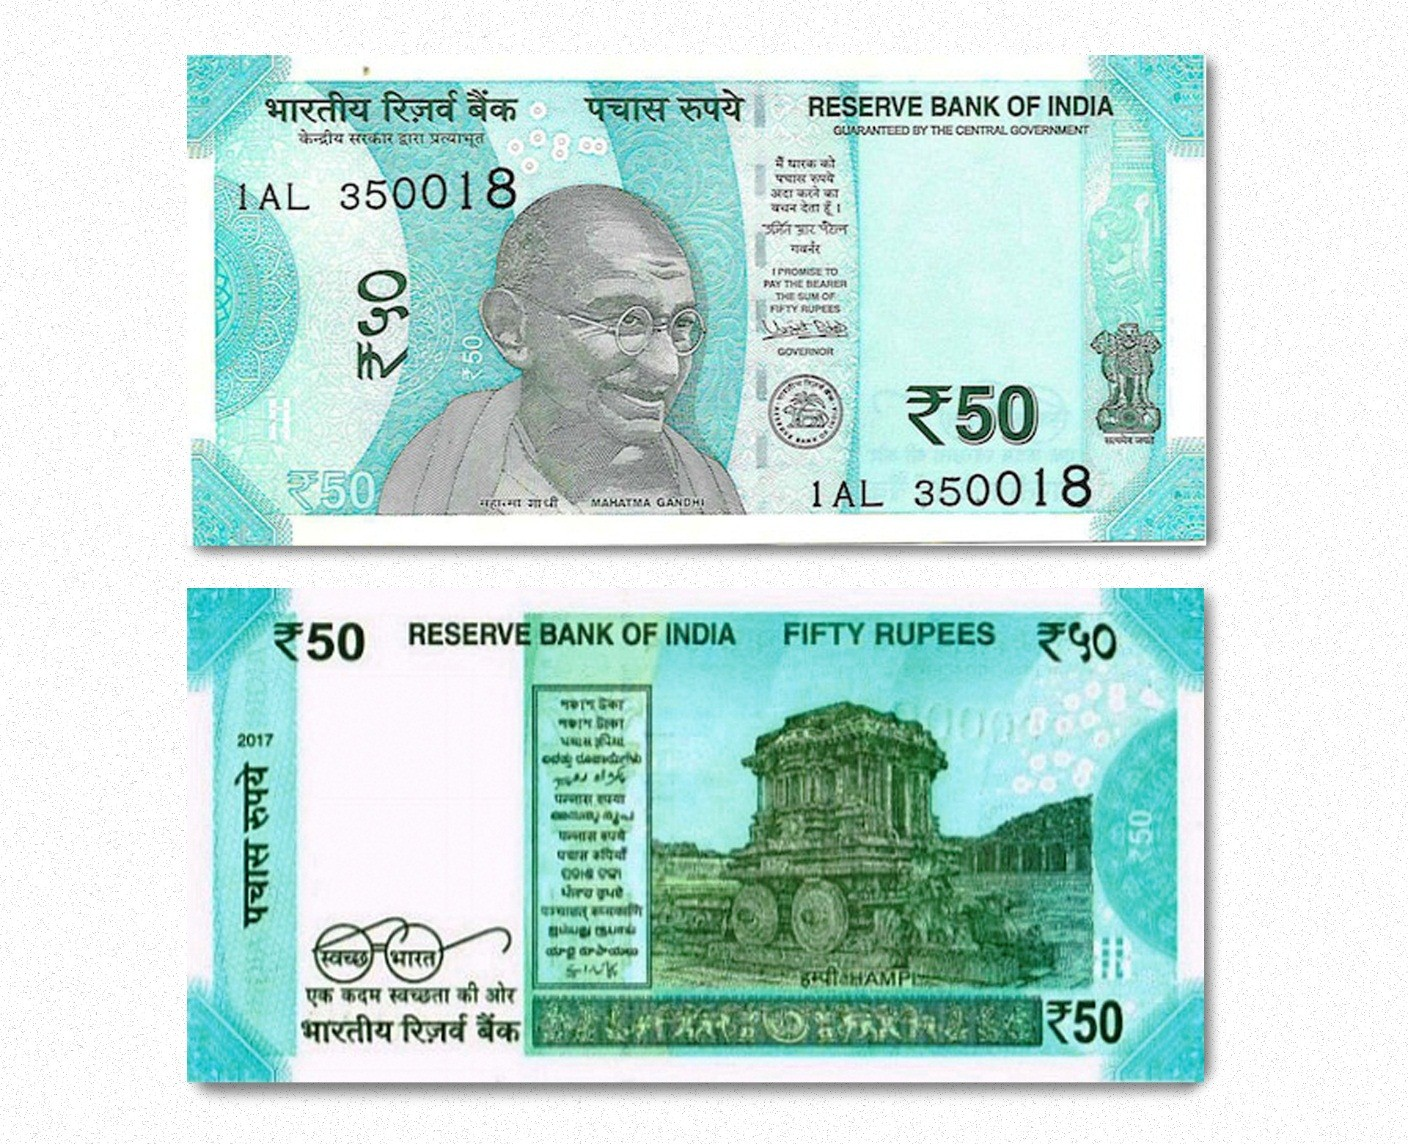 India's New Currency Design: An Analysis of the New Currency